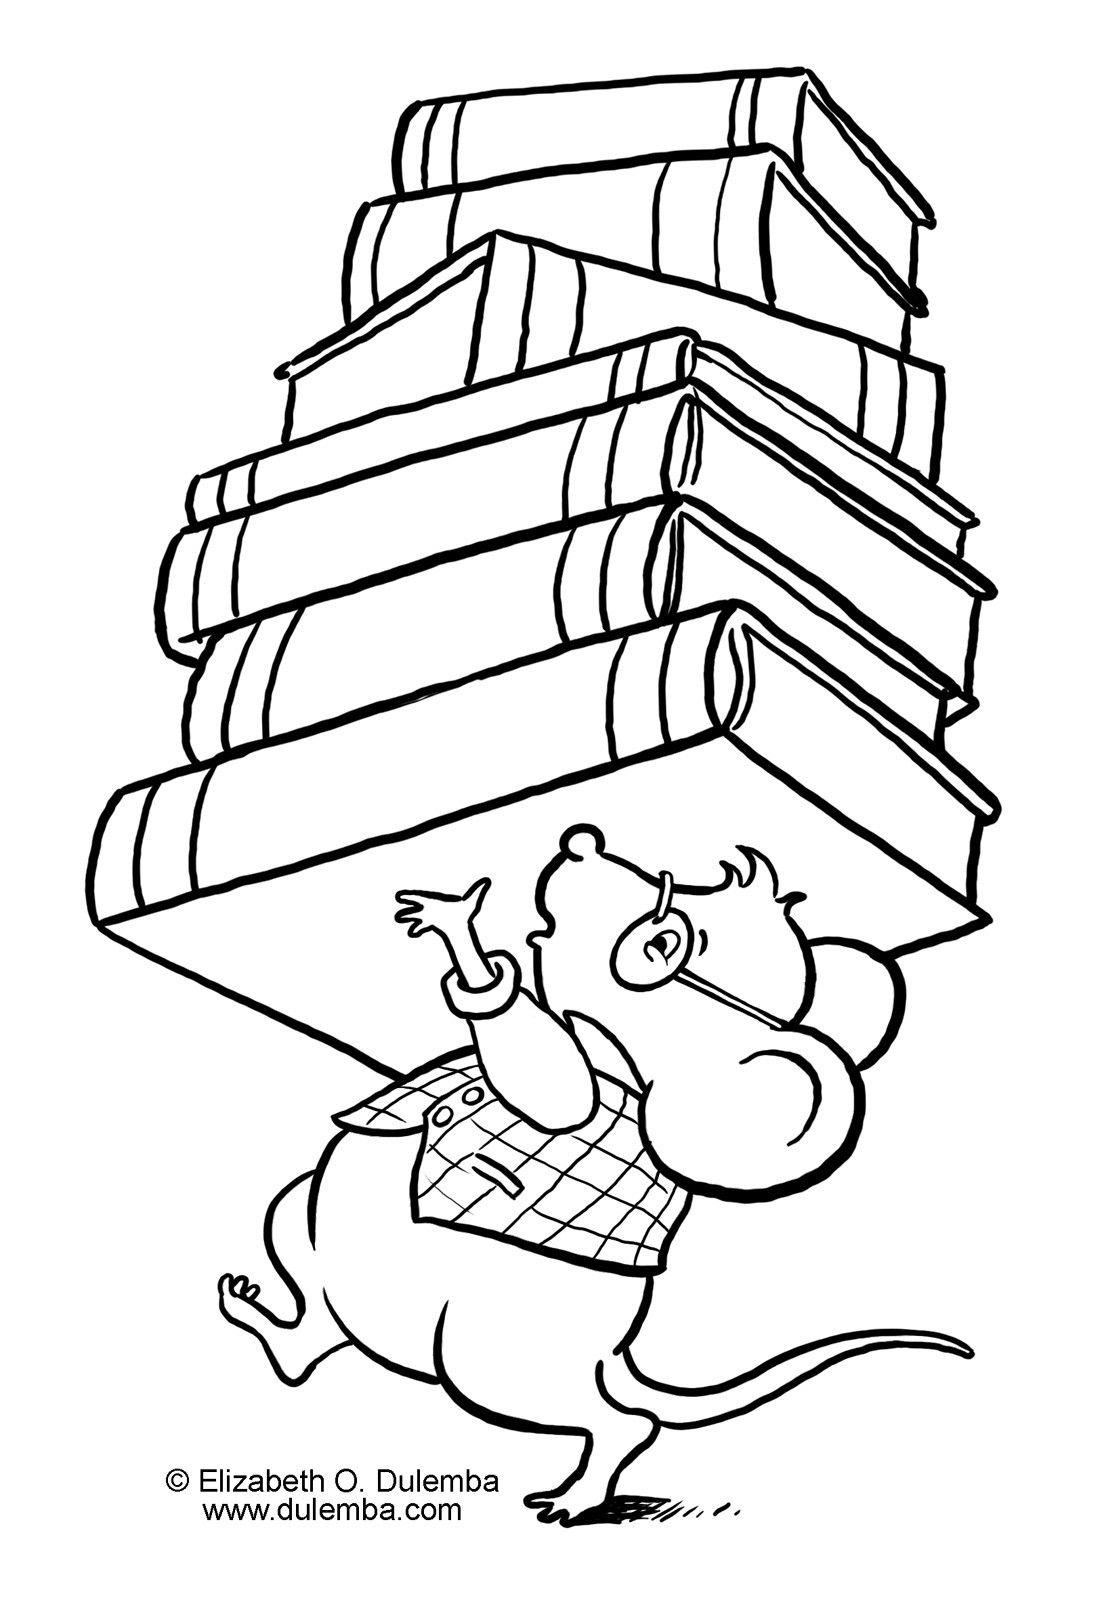 Library Coloring Pages For Kids Coloring Books Coloring Sheets